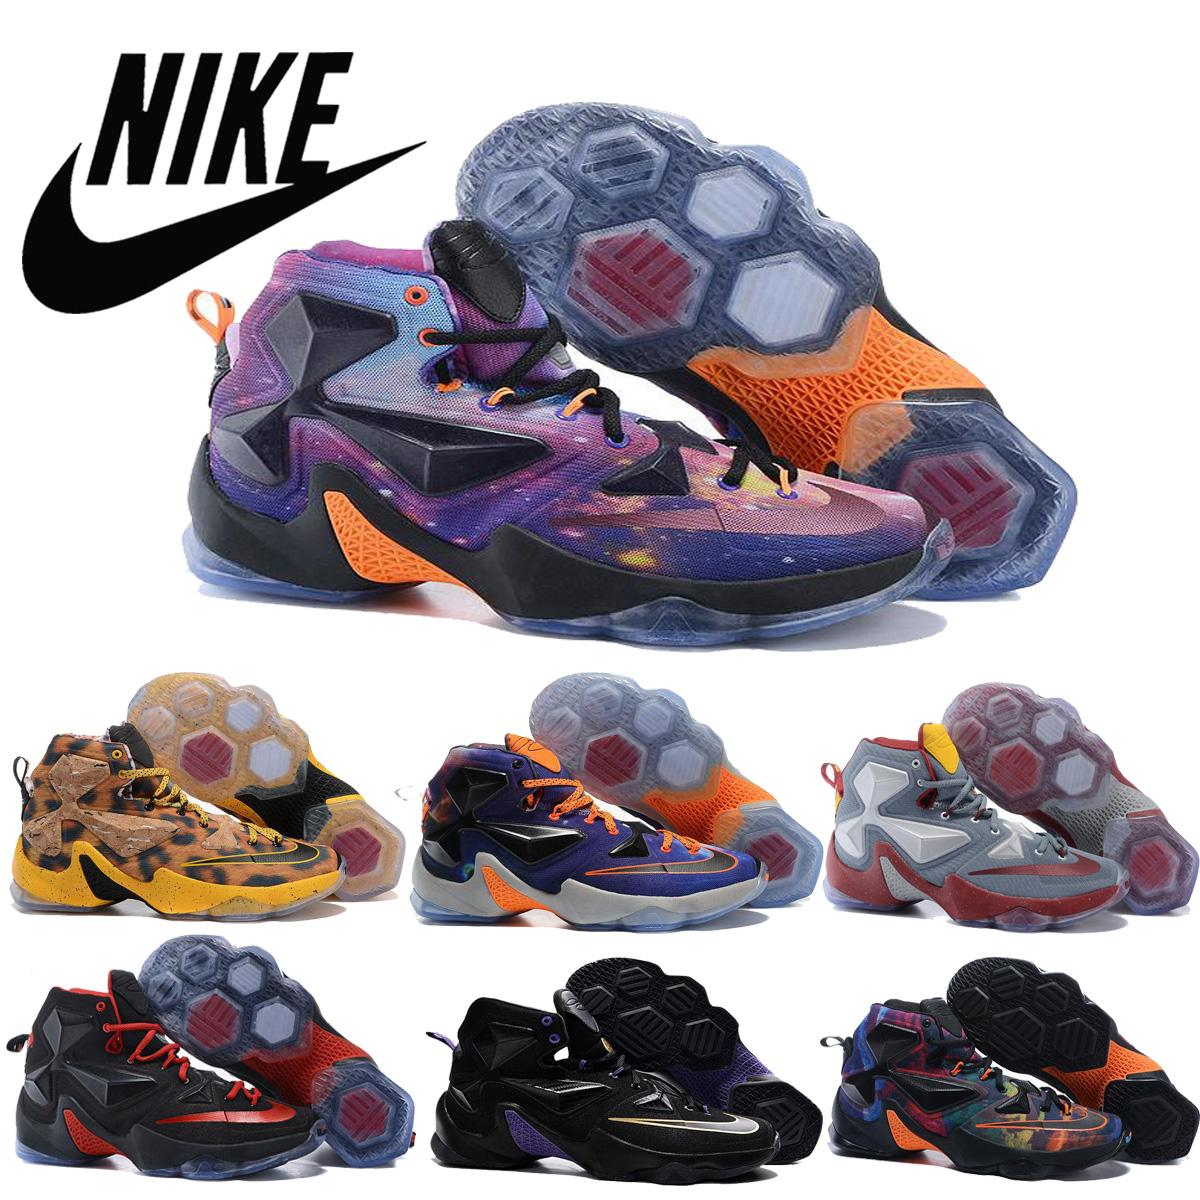 Lebron James Shoes Price In South Africa